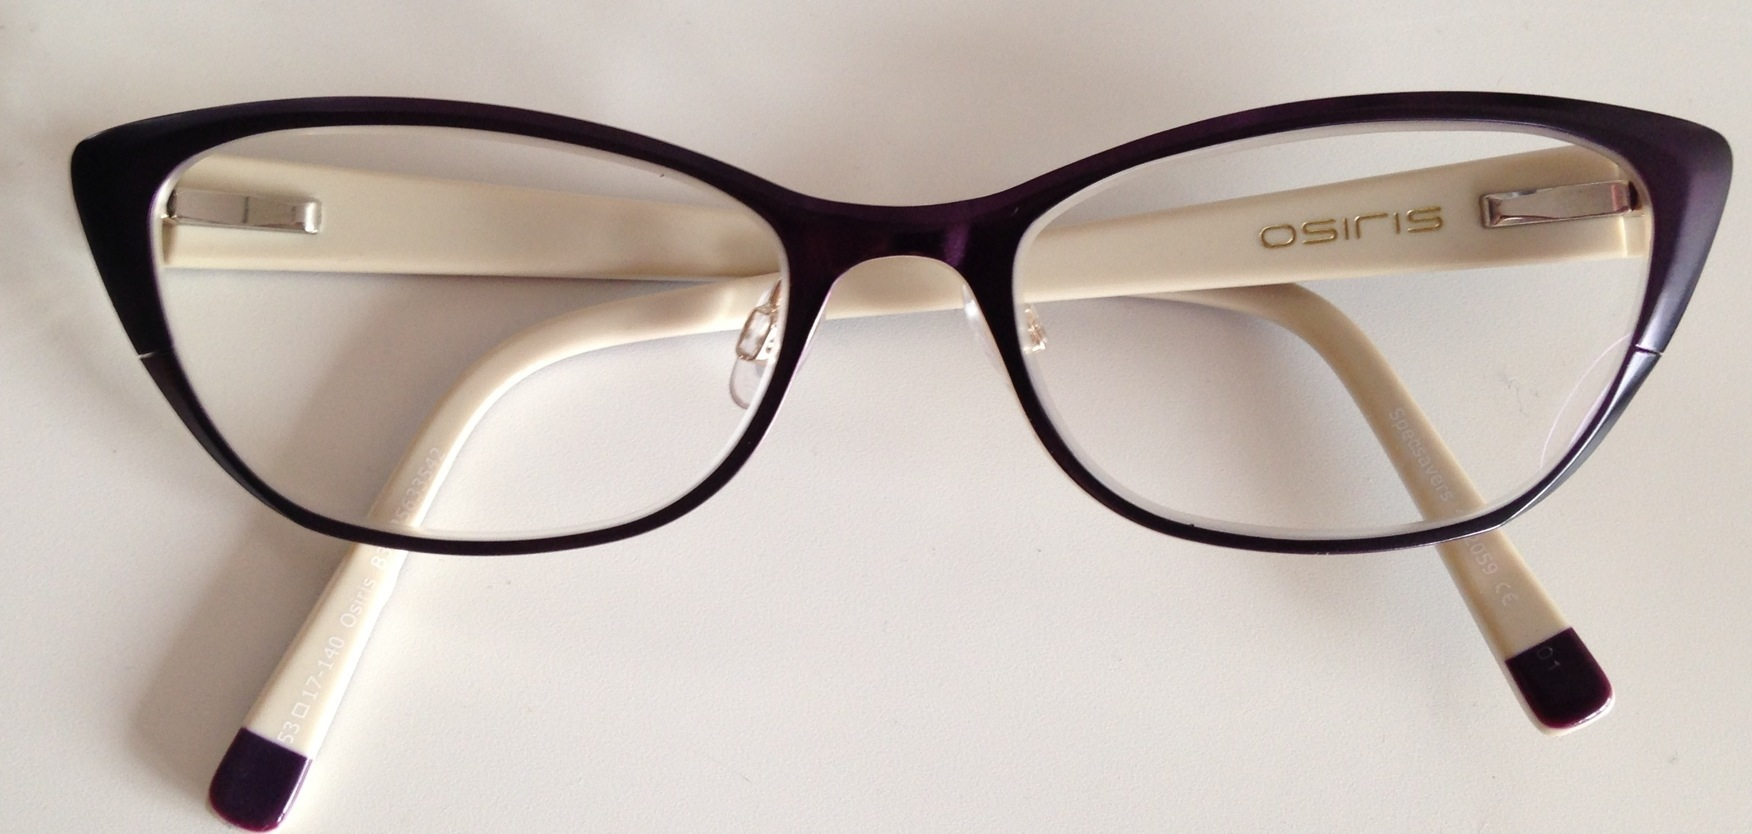 Product review: Osiris glasses from Specsavers So Many ...